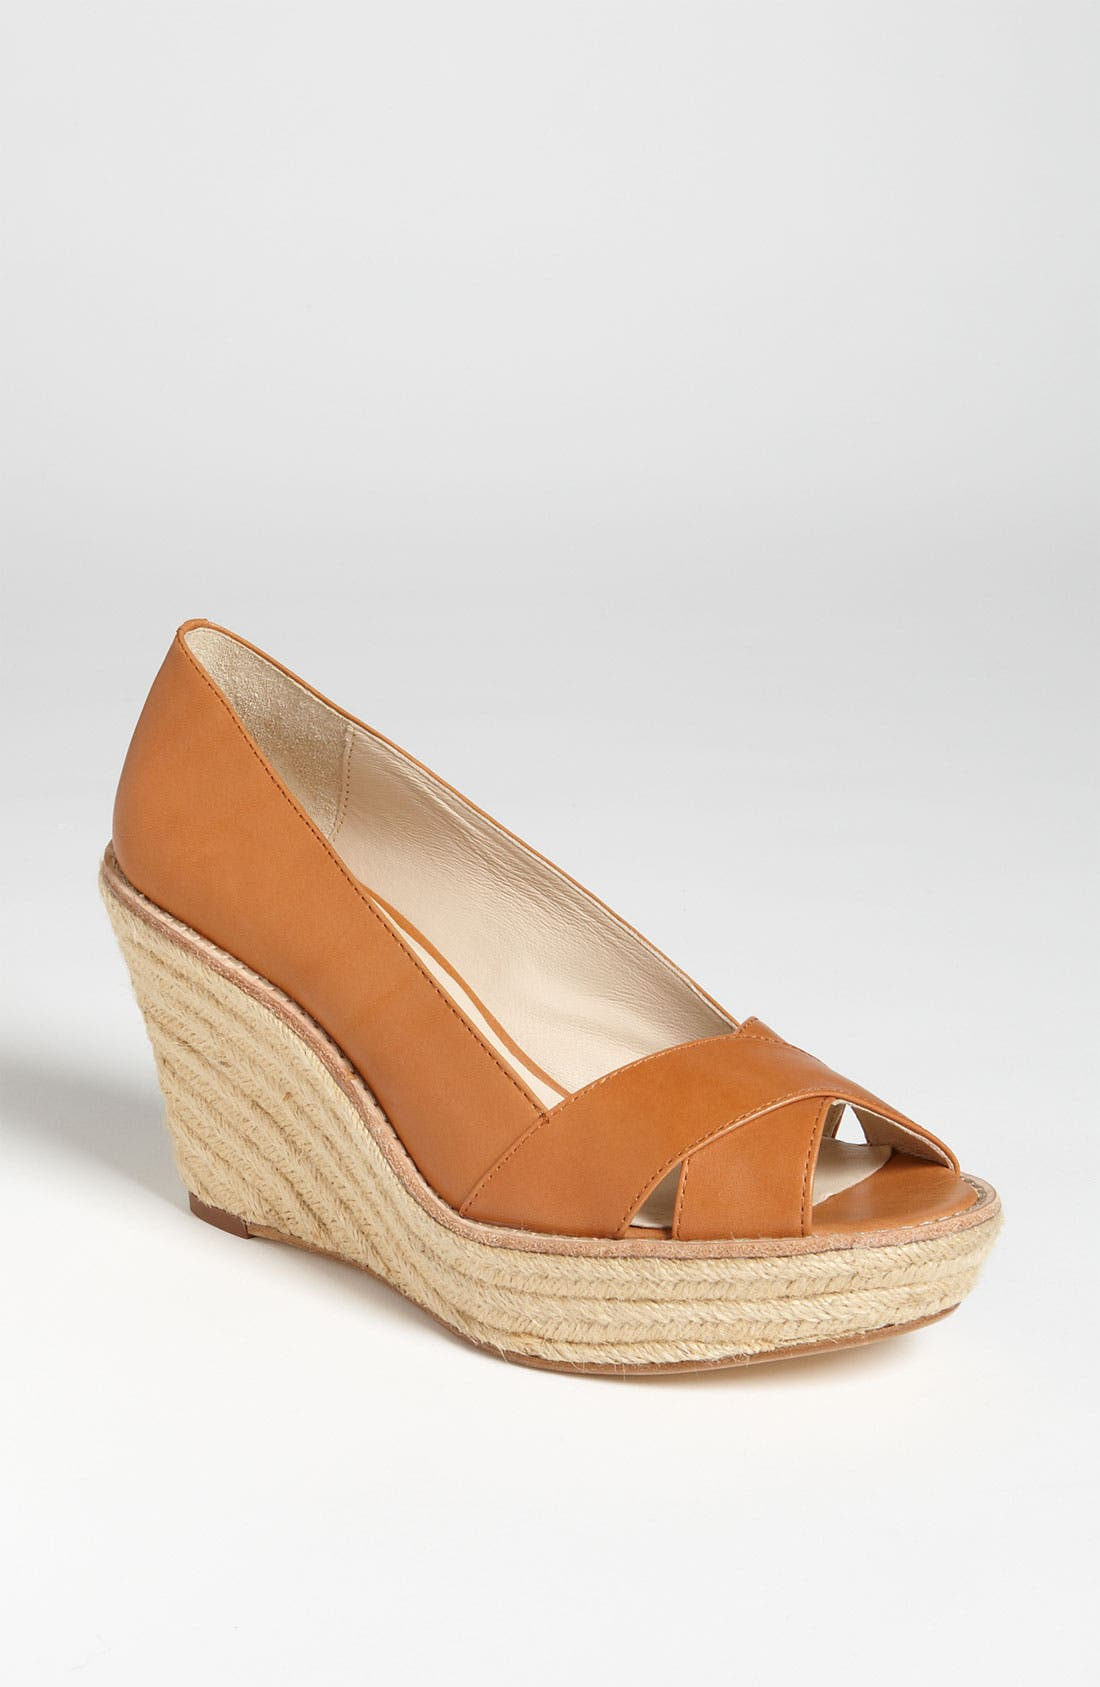 Main Image - KORS Michael Kors 'Upland' Wedge